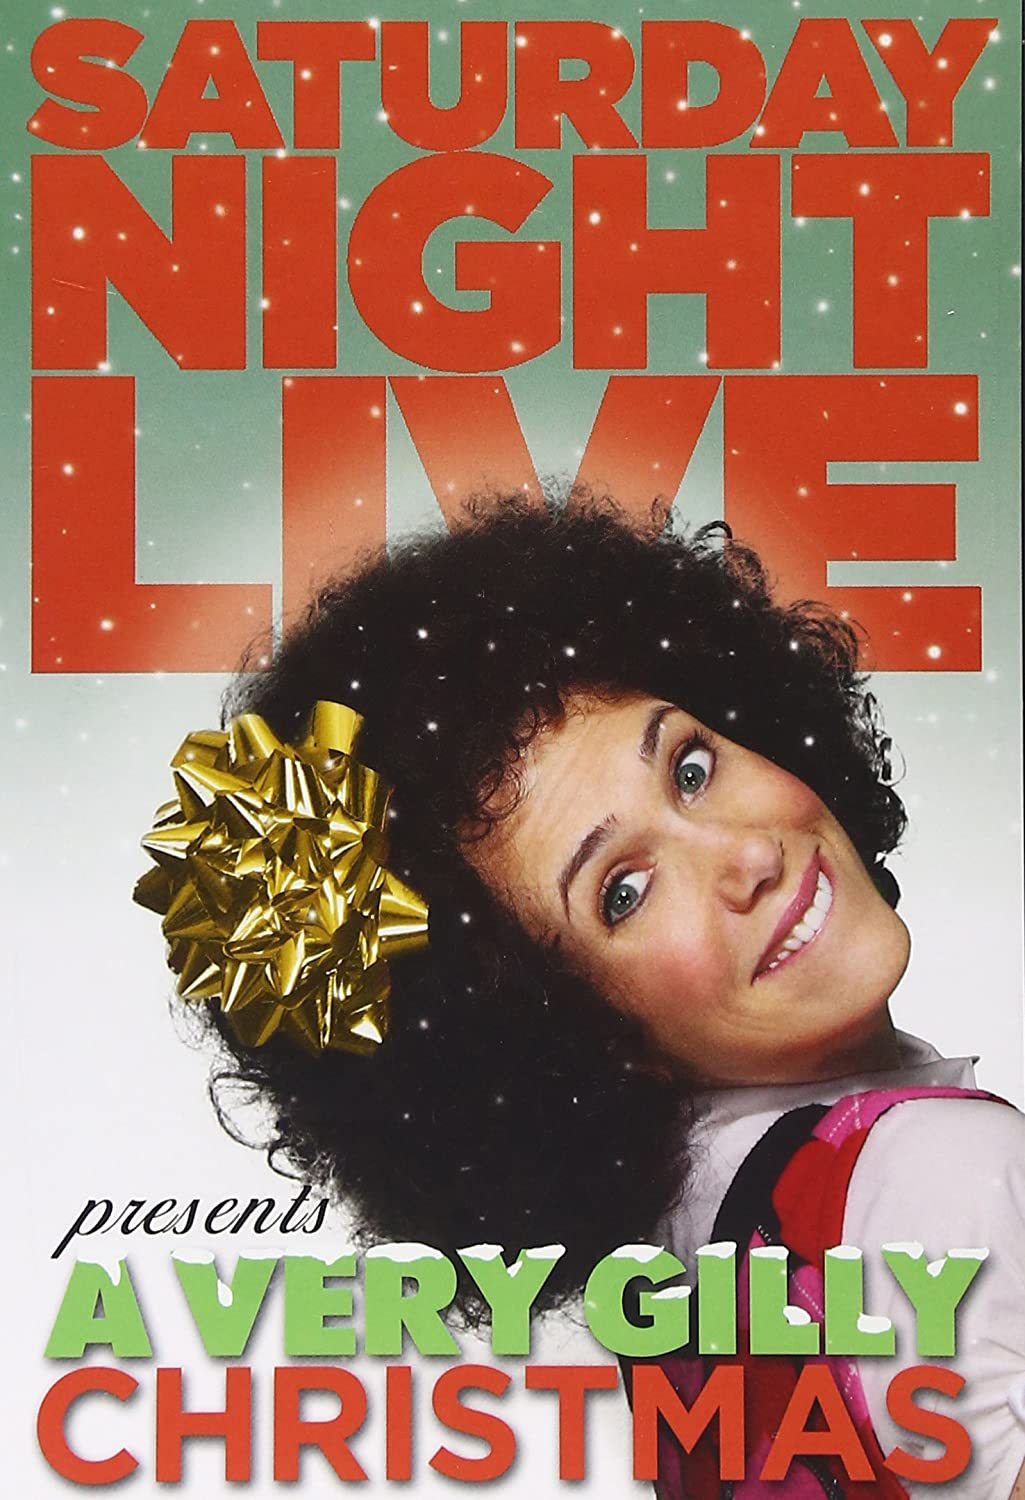 Amazon.com: Saturday Night Live: Presents A Very Gilly Christmas ...